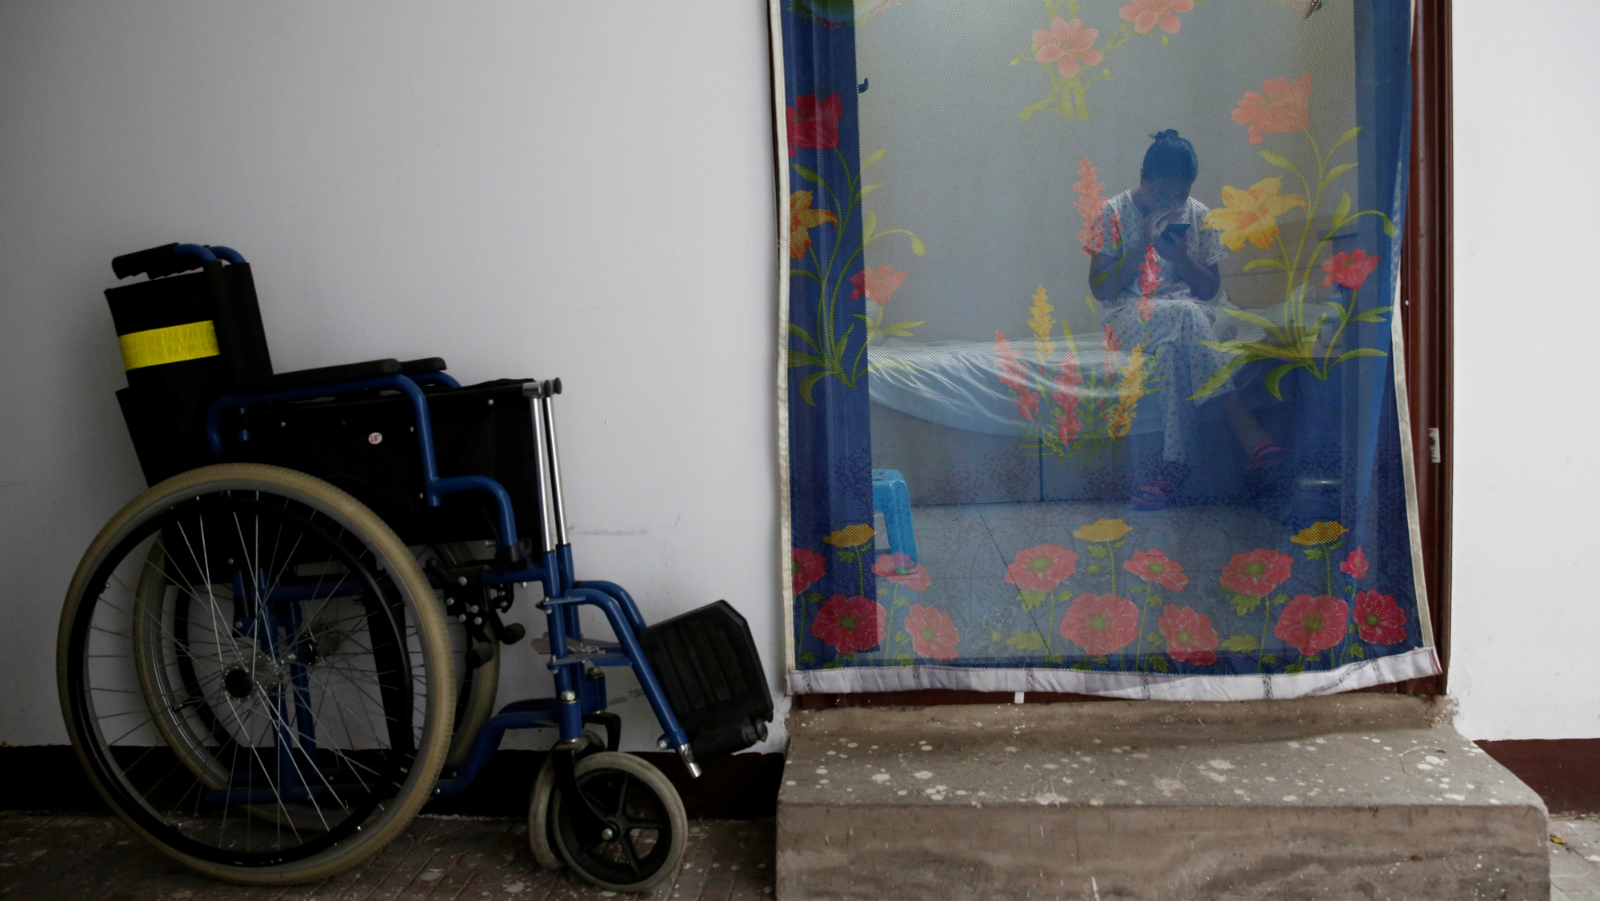 DATE IMPORTED:September 29, 2016Wang uses a mobile phone as she take a rest in her room at the accommodation where patients and their family members stay while seeking medical treatments in Beijing, China, June 23, 2016. Wang, who suffers from cervical cancer, came from Inner Mongolia to seek treatment at a specialist hospital in Beijing.